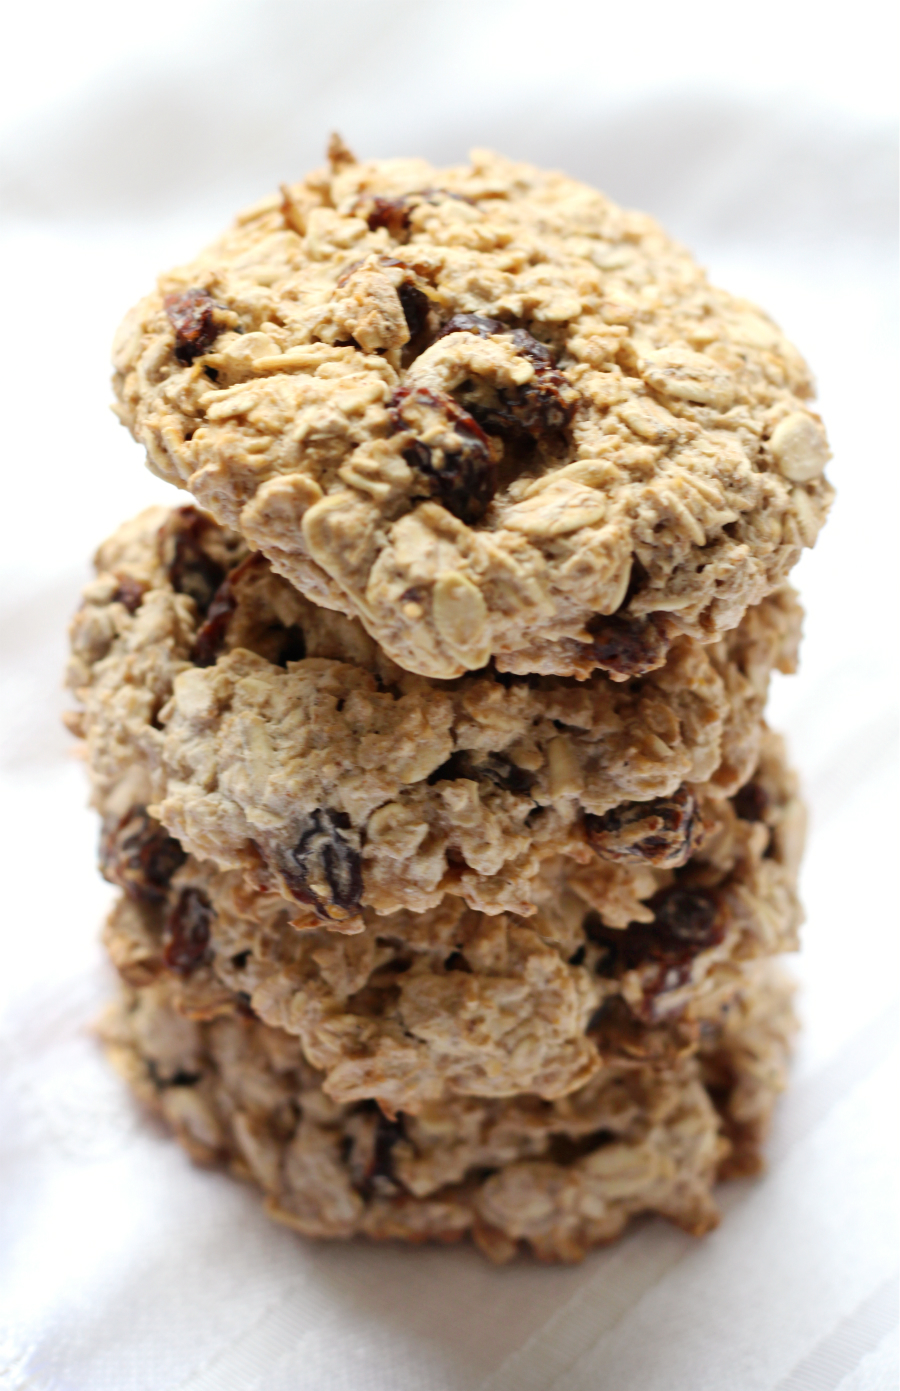 "Chewy Gluten-Free Oatmeal Raisin Cookies (Allergy-Free, Vegan) | Strength and Sunshine @RebeccaGF666 Your favorite ""healthy"" cookies, now gluten-free, allergy-free, and vegan! These Chewy Gluten-Free Oatmeal Raisin Cookies are an easy dessert recipe to bake up any day of the week when the craving for a sweet snack hits!"